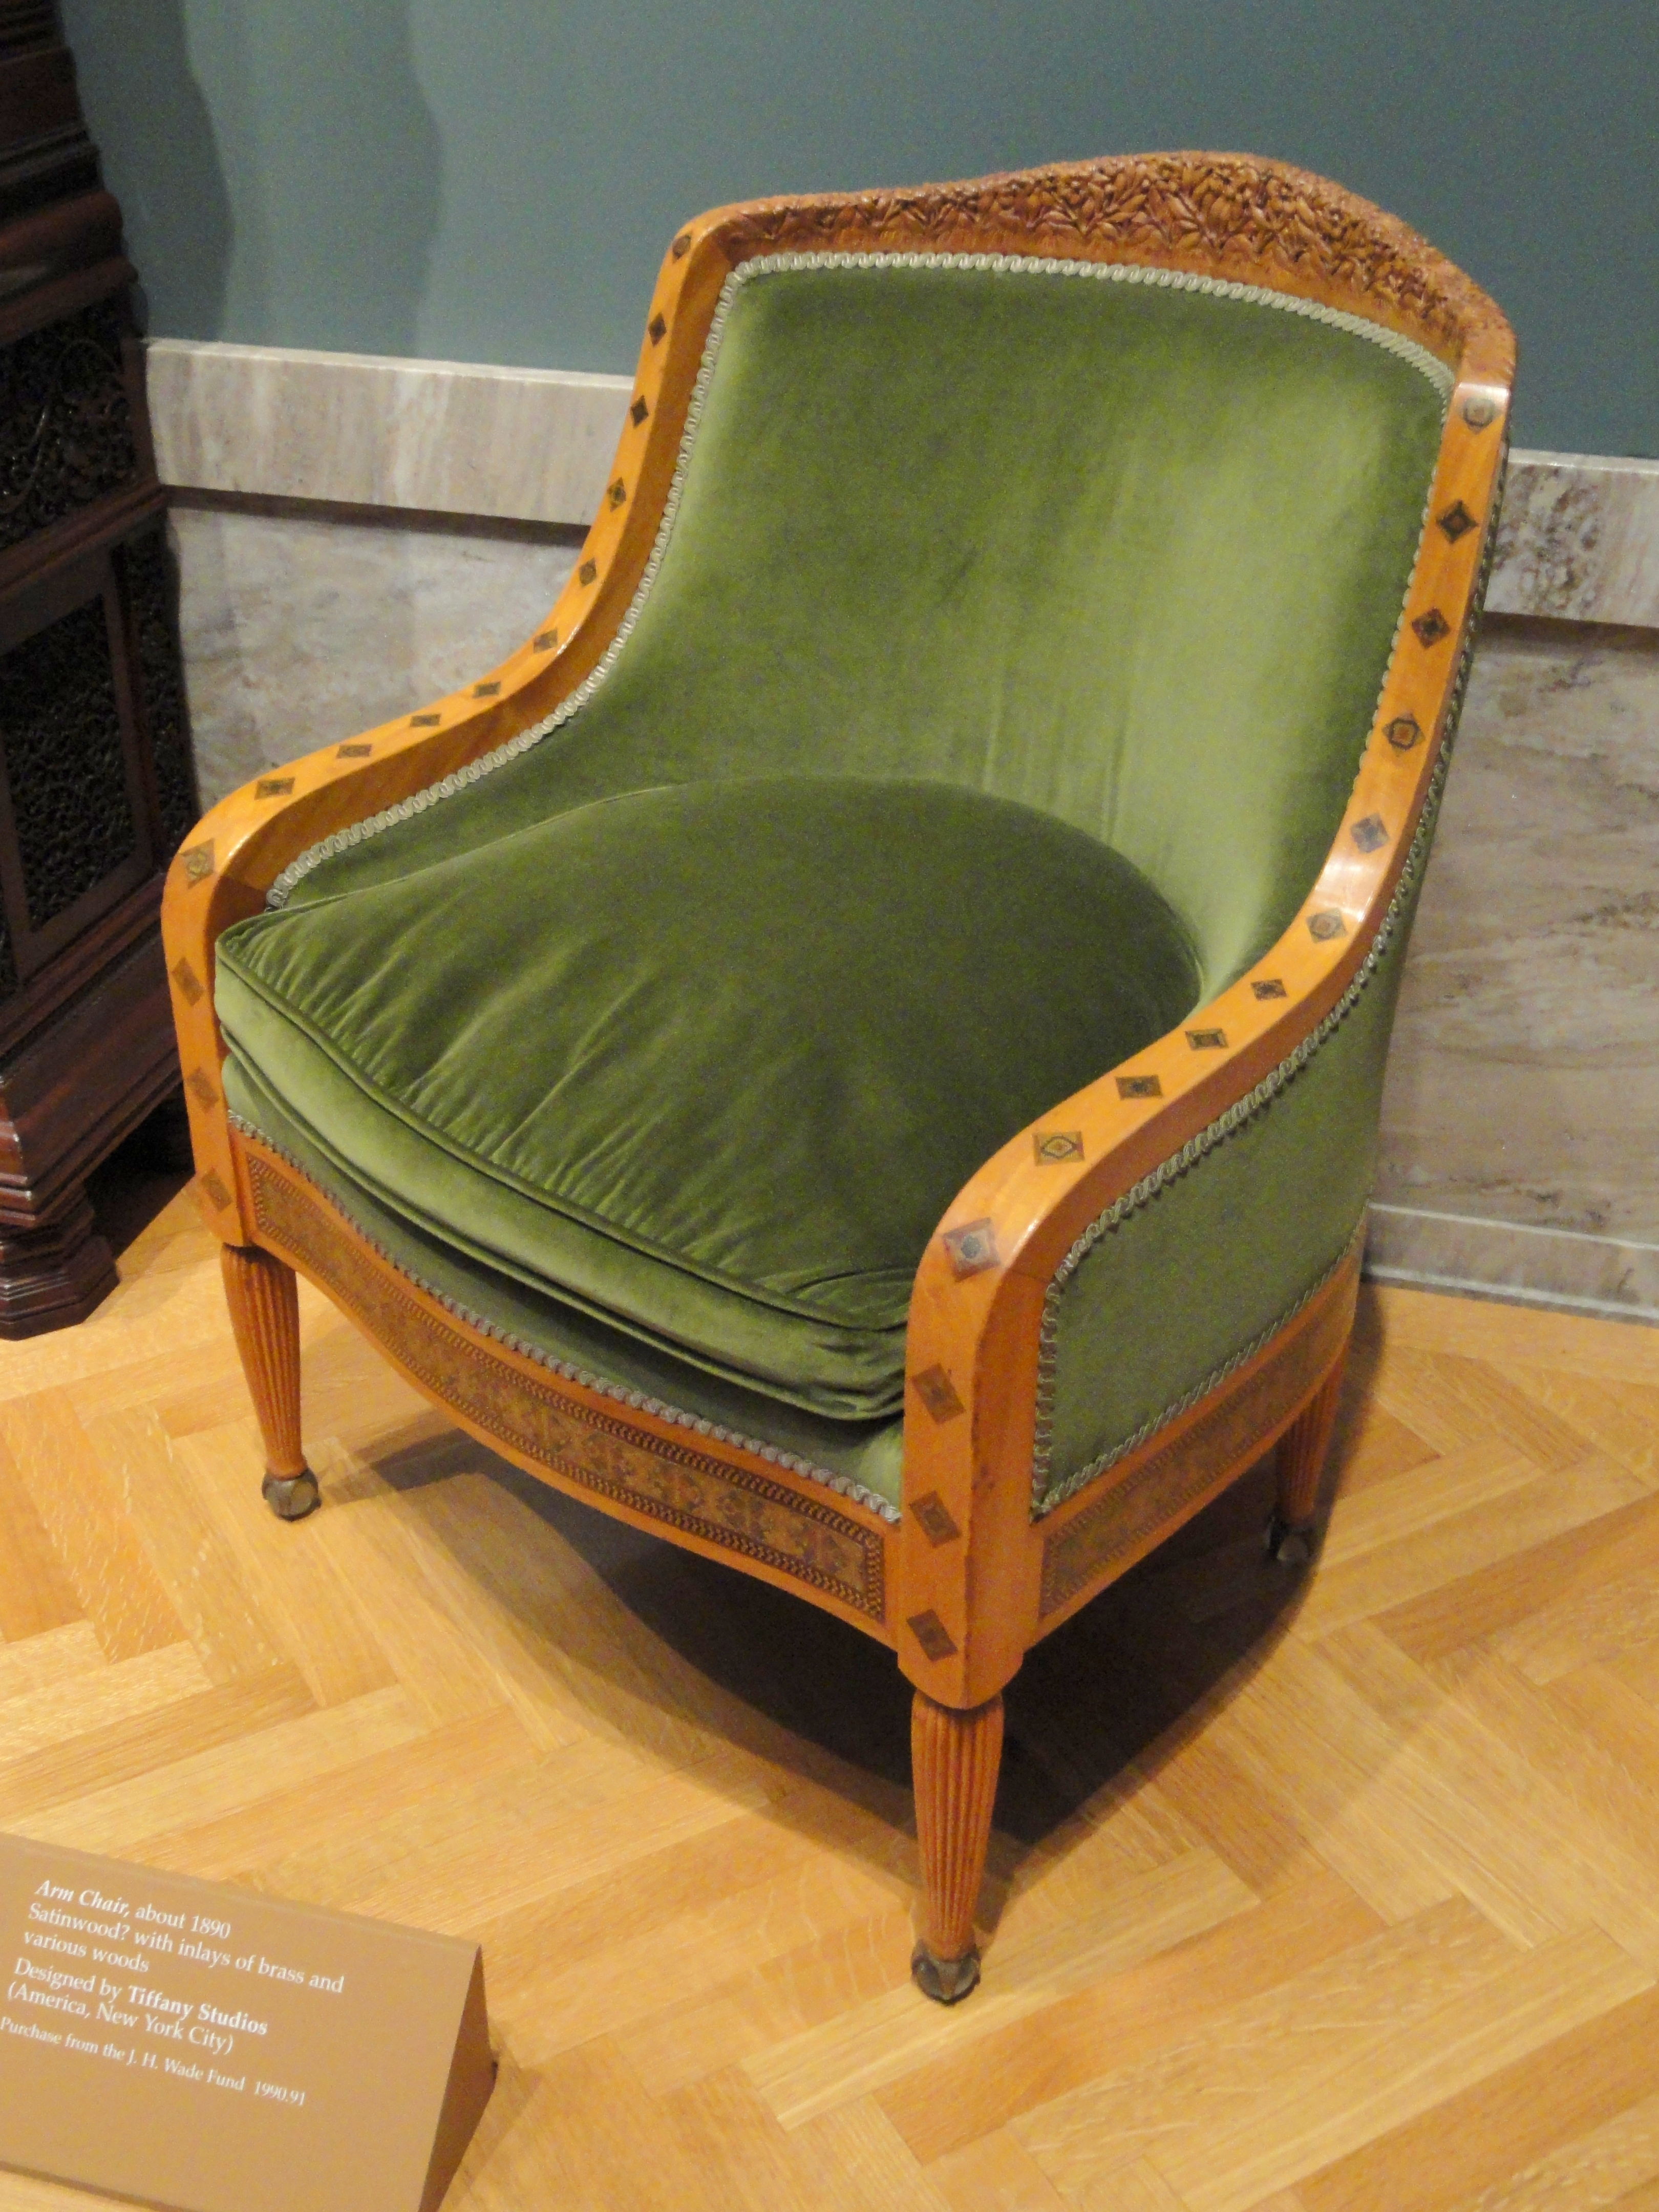 Fauteuils Tiffany File Arm Chair About 1890 Tiffany Studios New York Cleveland